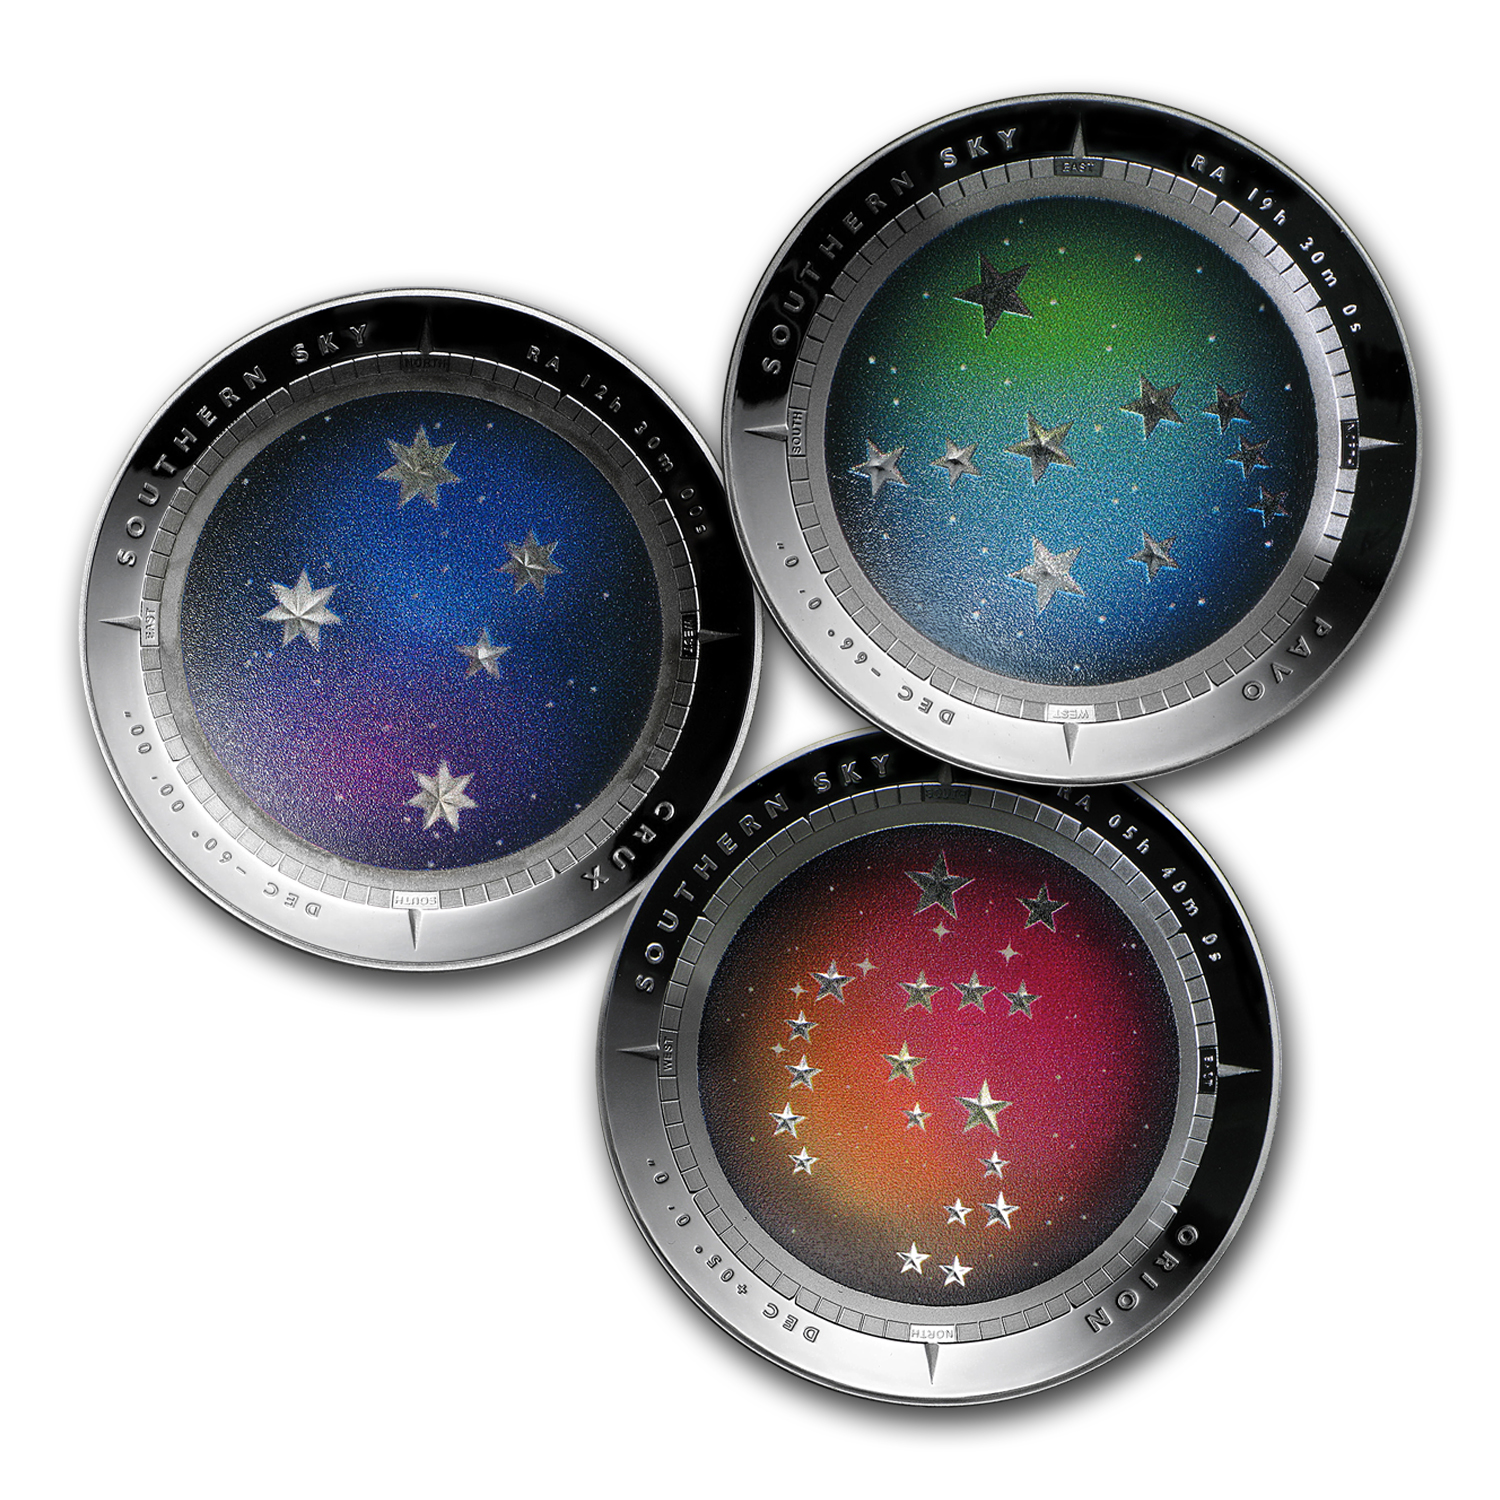 2012-2014 Australia Proof Silver $5 Color Domed Southern Sky Set